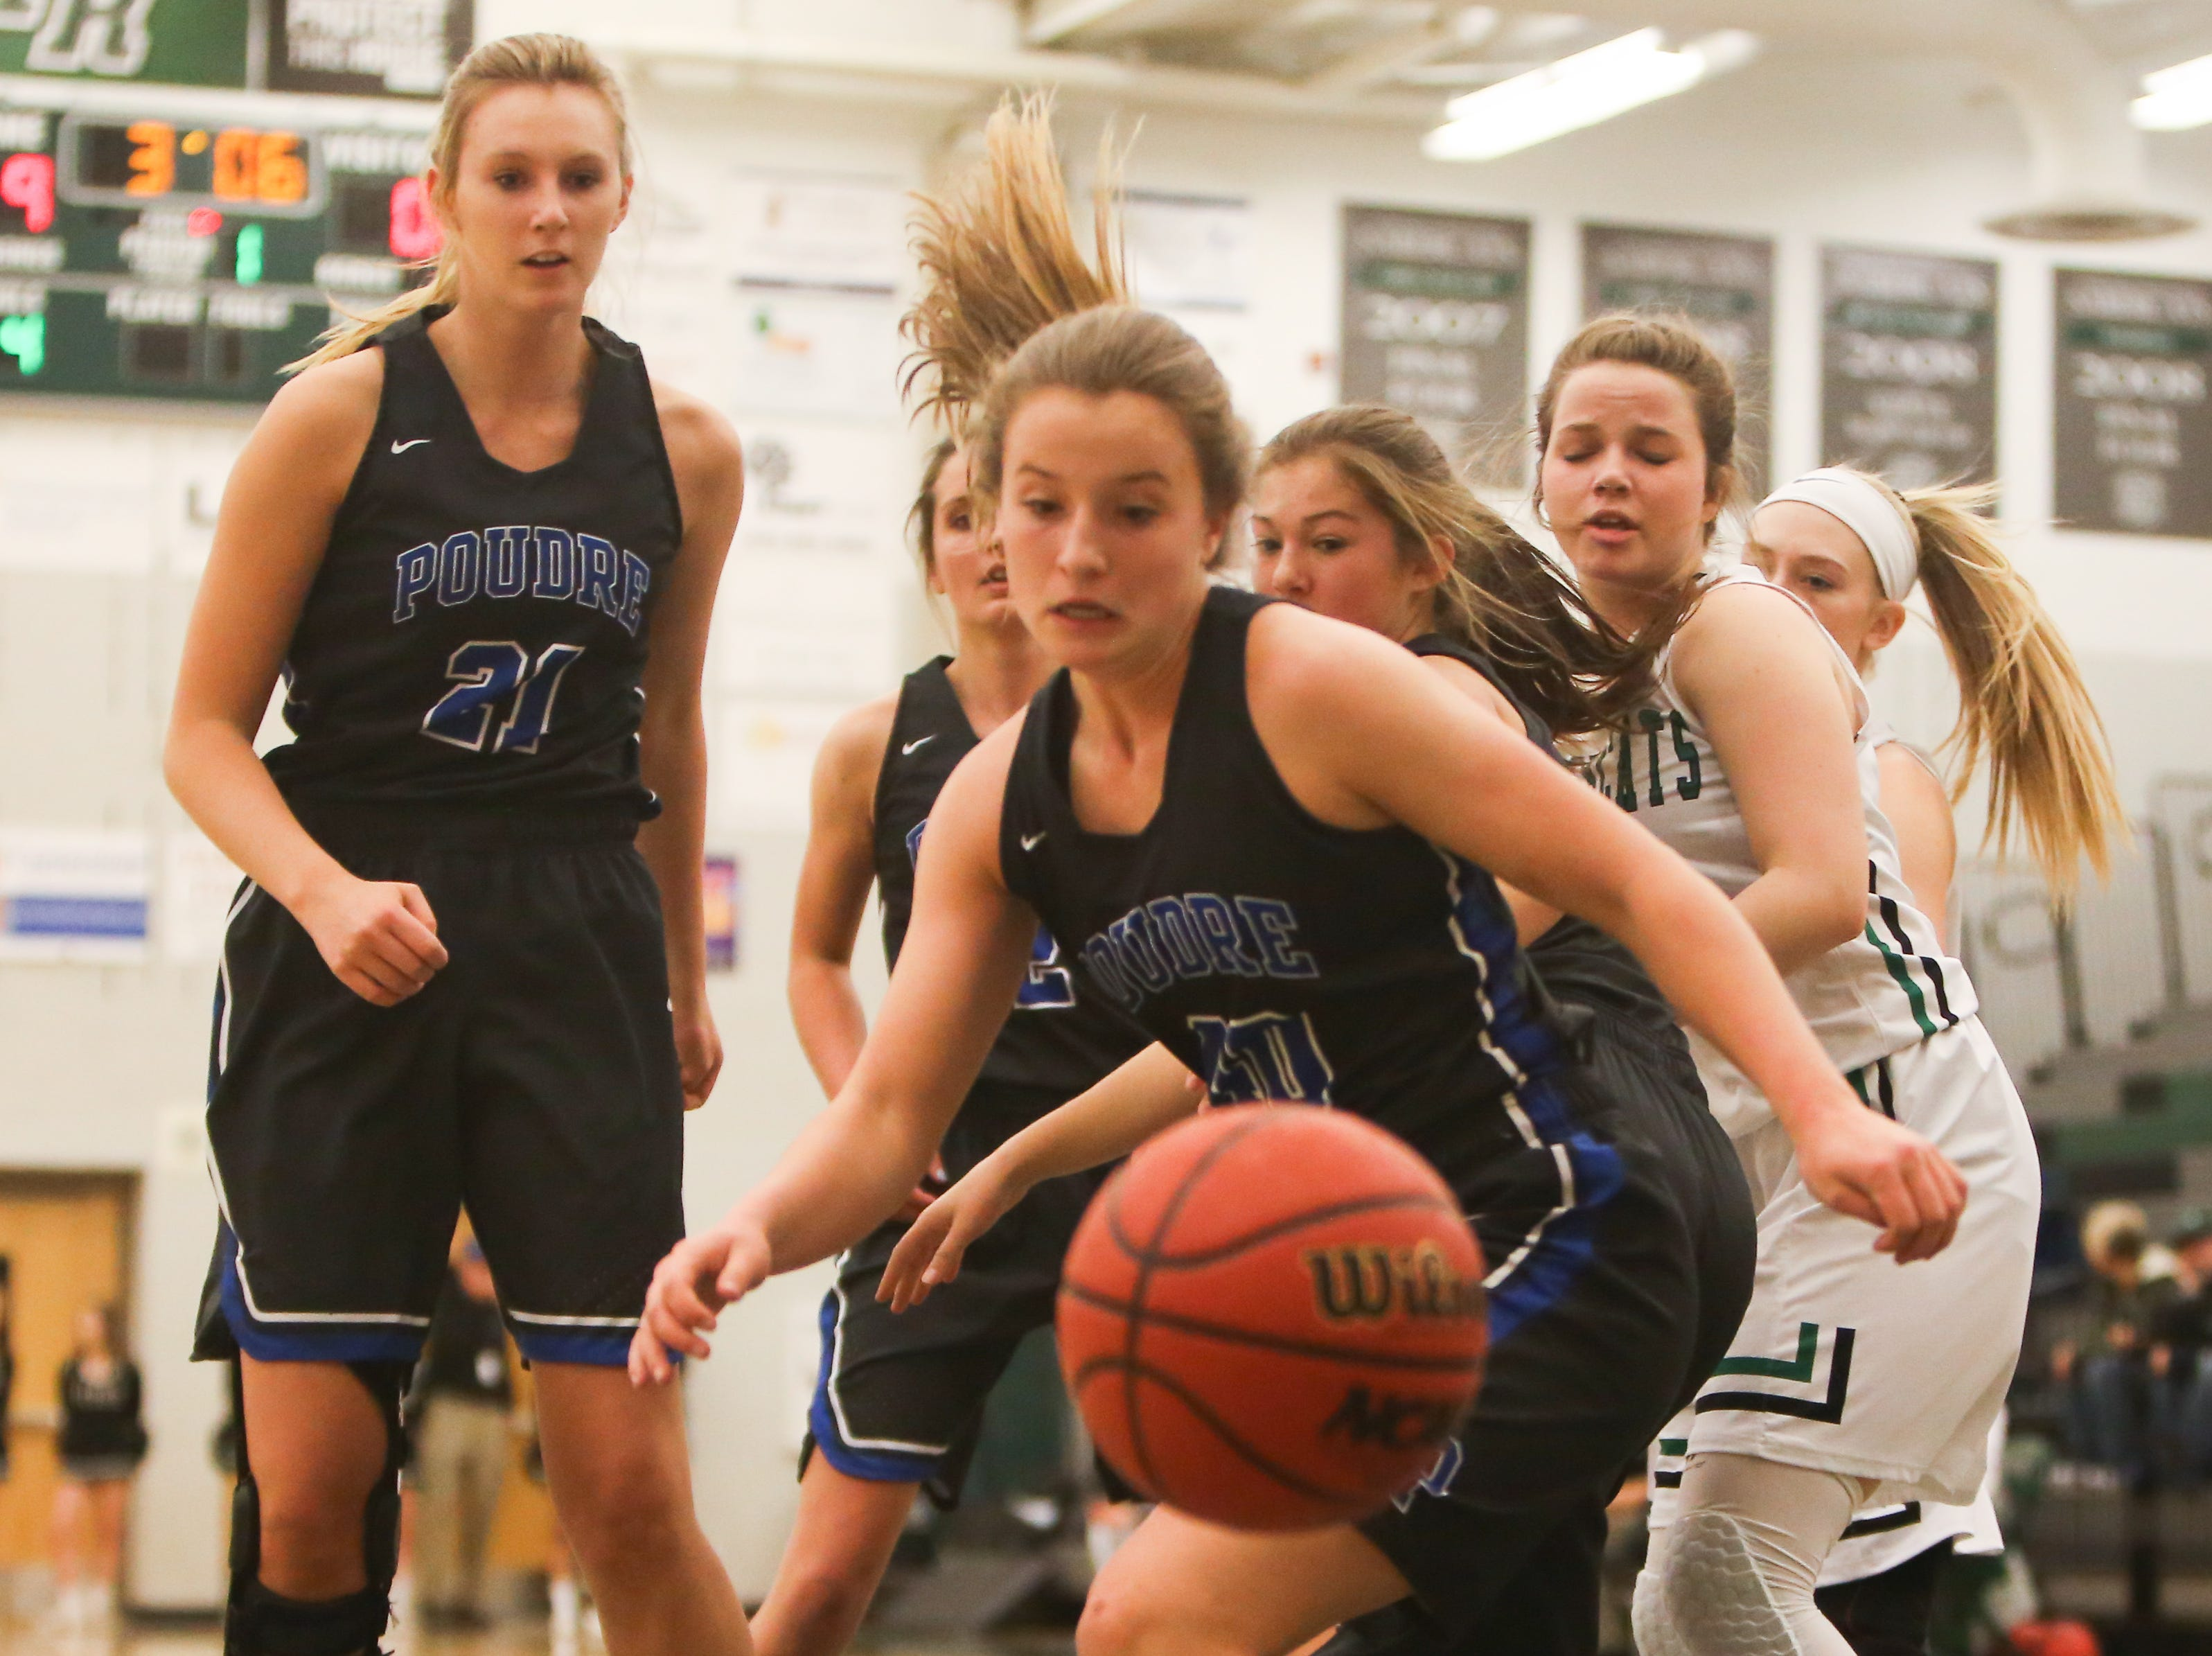 A Poudre High School players loses control against the ball during the game against Fossil Ridge on Jan. 18.